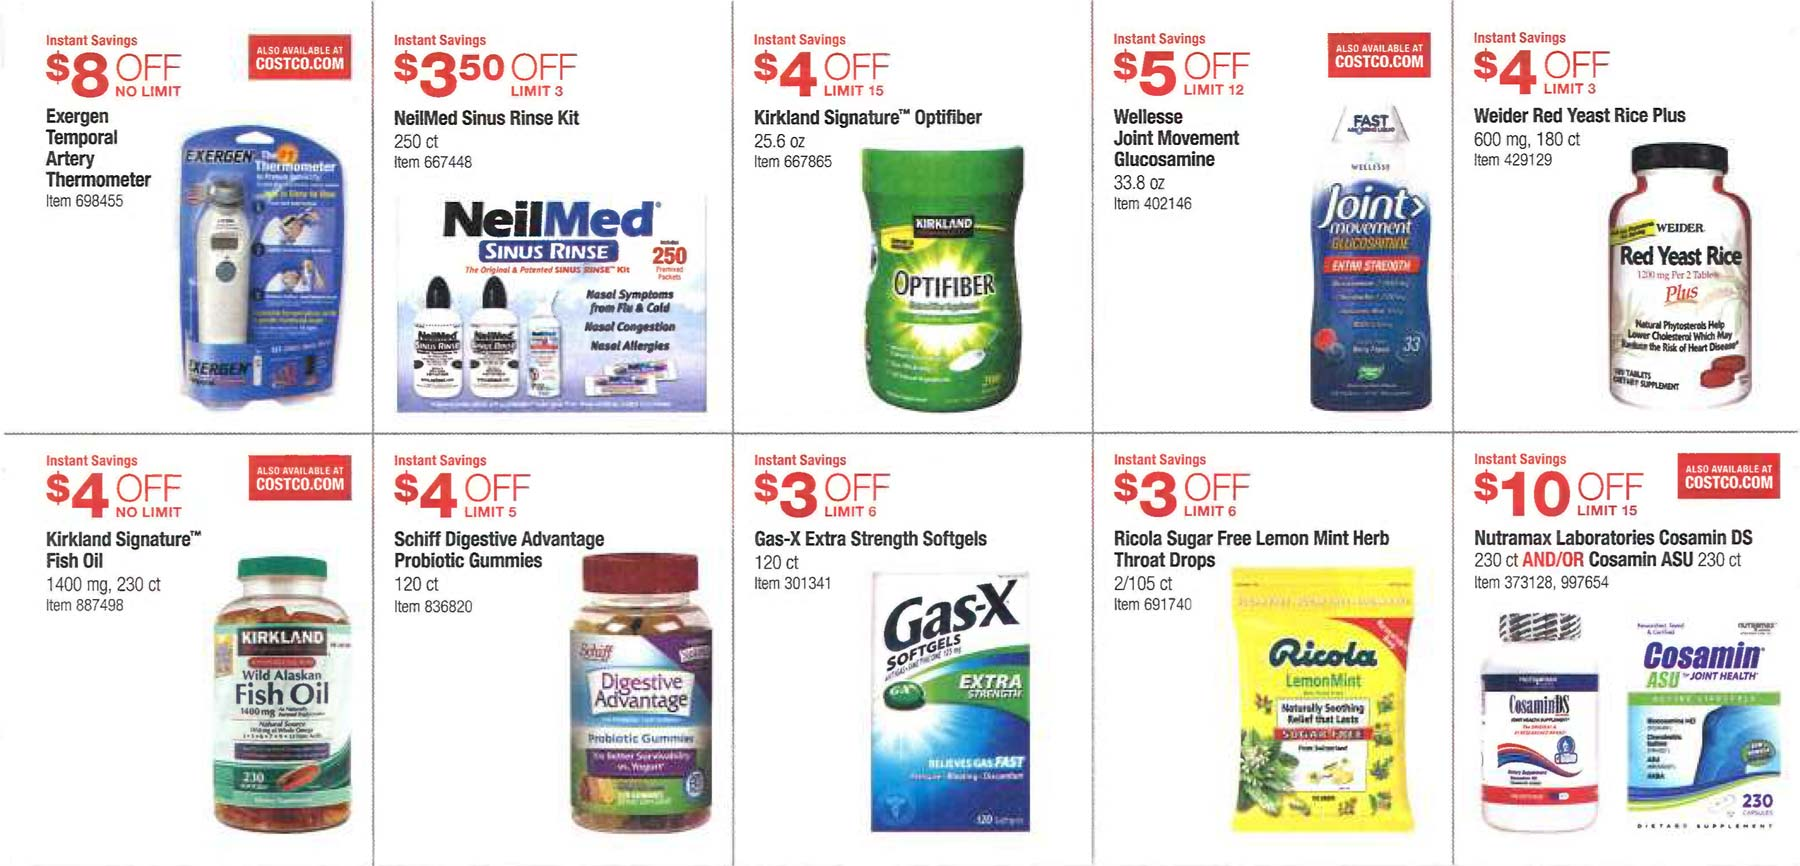 February 2016 Costco Coupon Book Page 10